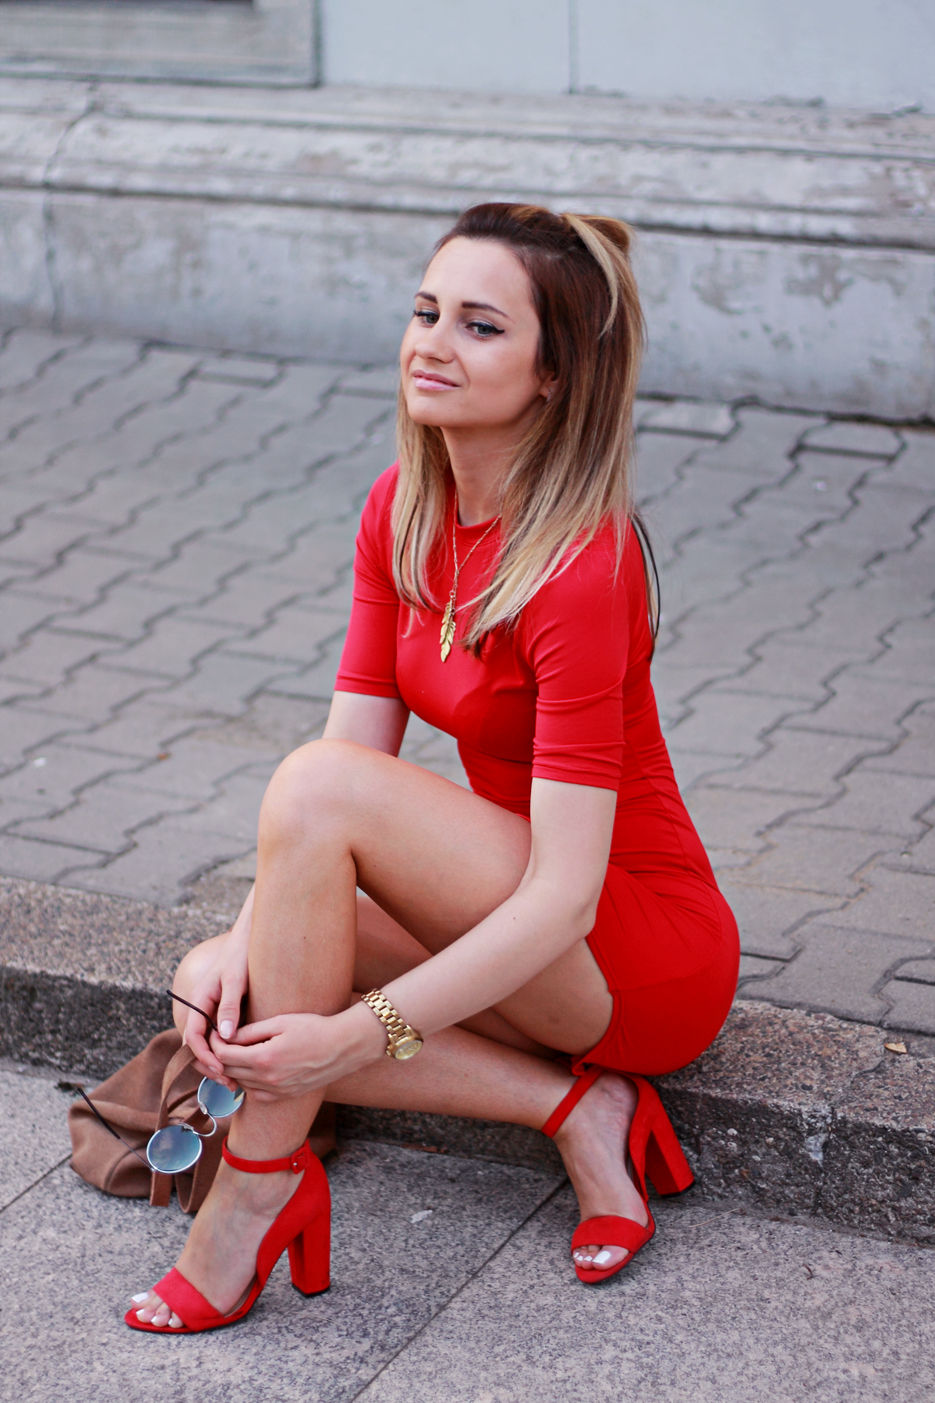 Best Summer Street Style Fashion Red Dress Blonde Pretty Girl Tumblr Ootd Outfit Lookbook Look